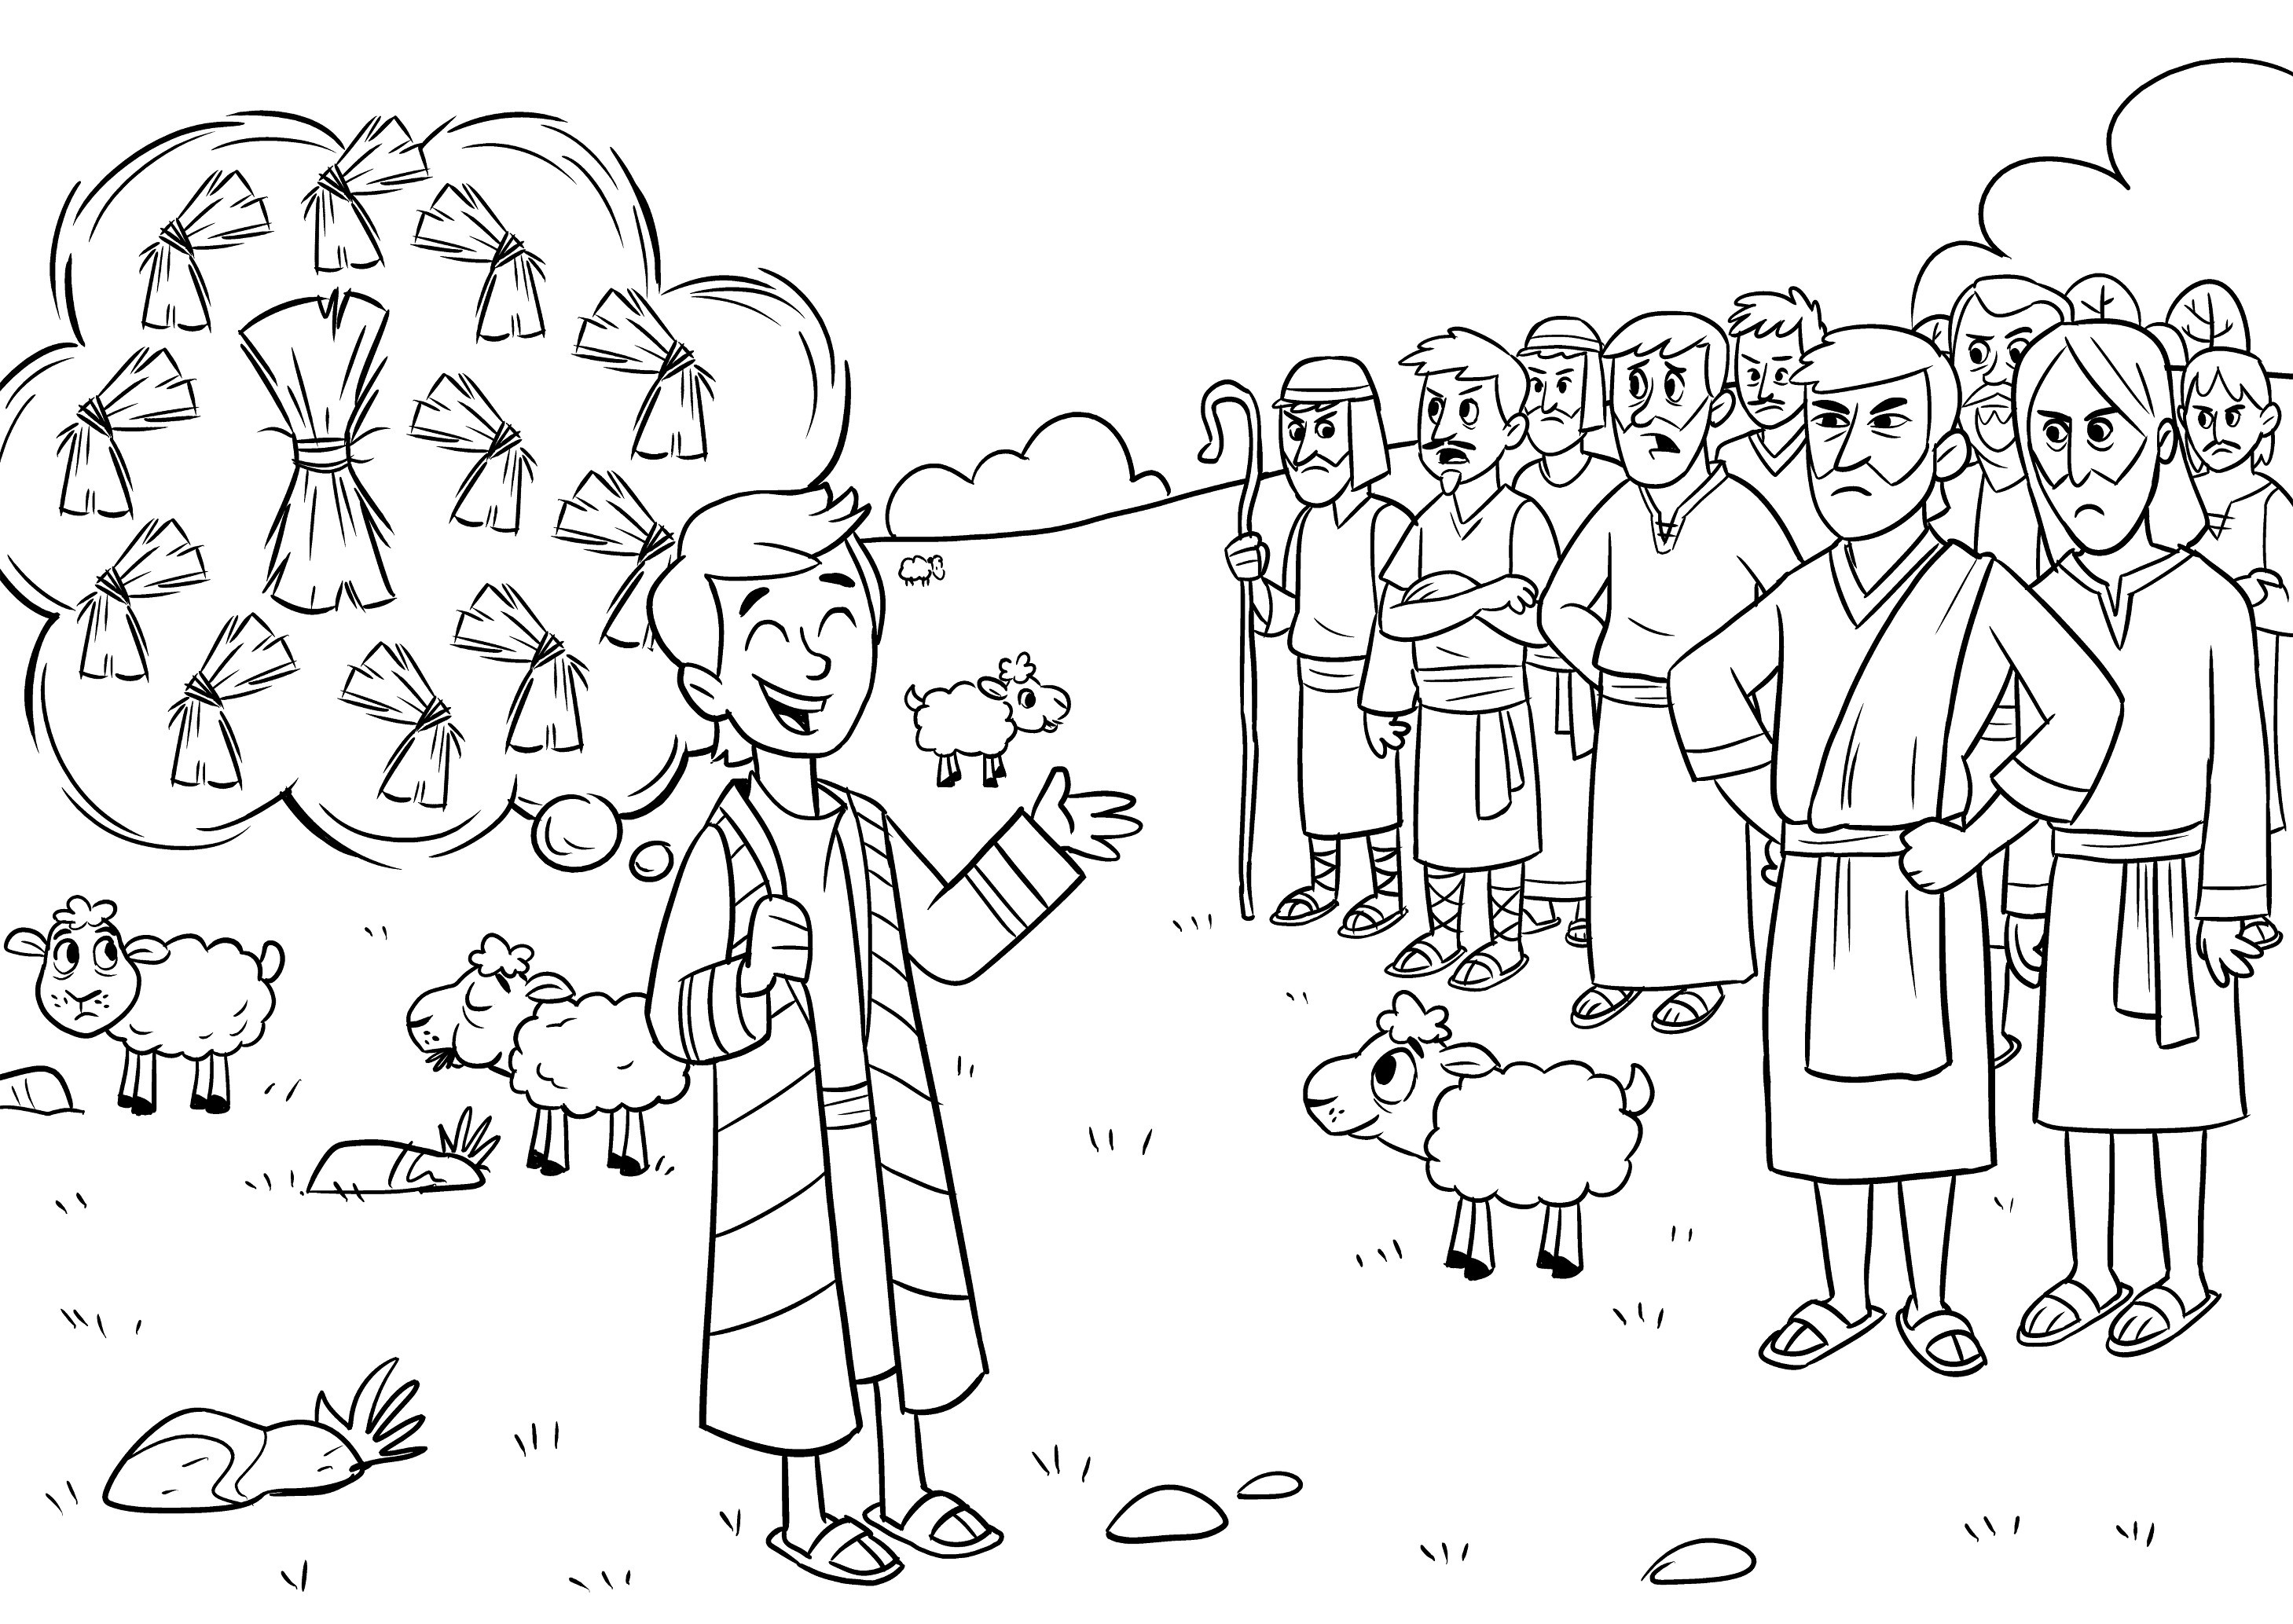 Joseph Son Of Jacob Coloring Pages At Getdrawings